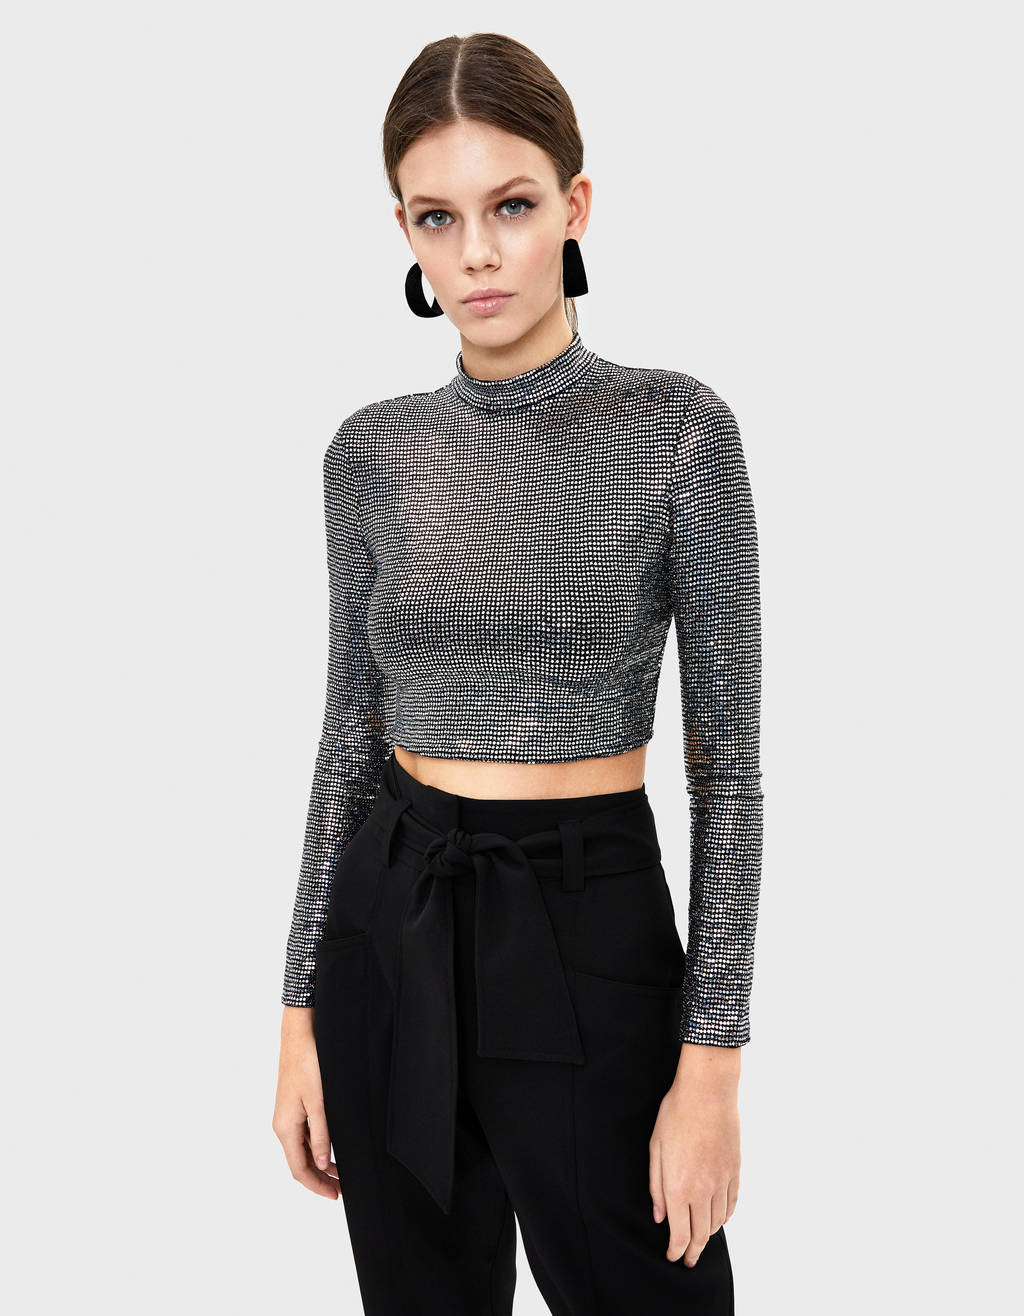 Mirrored sequin top